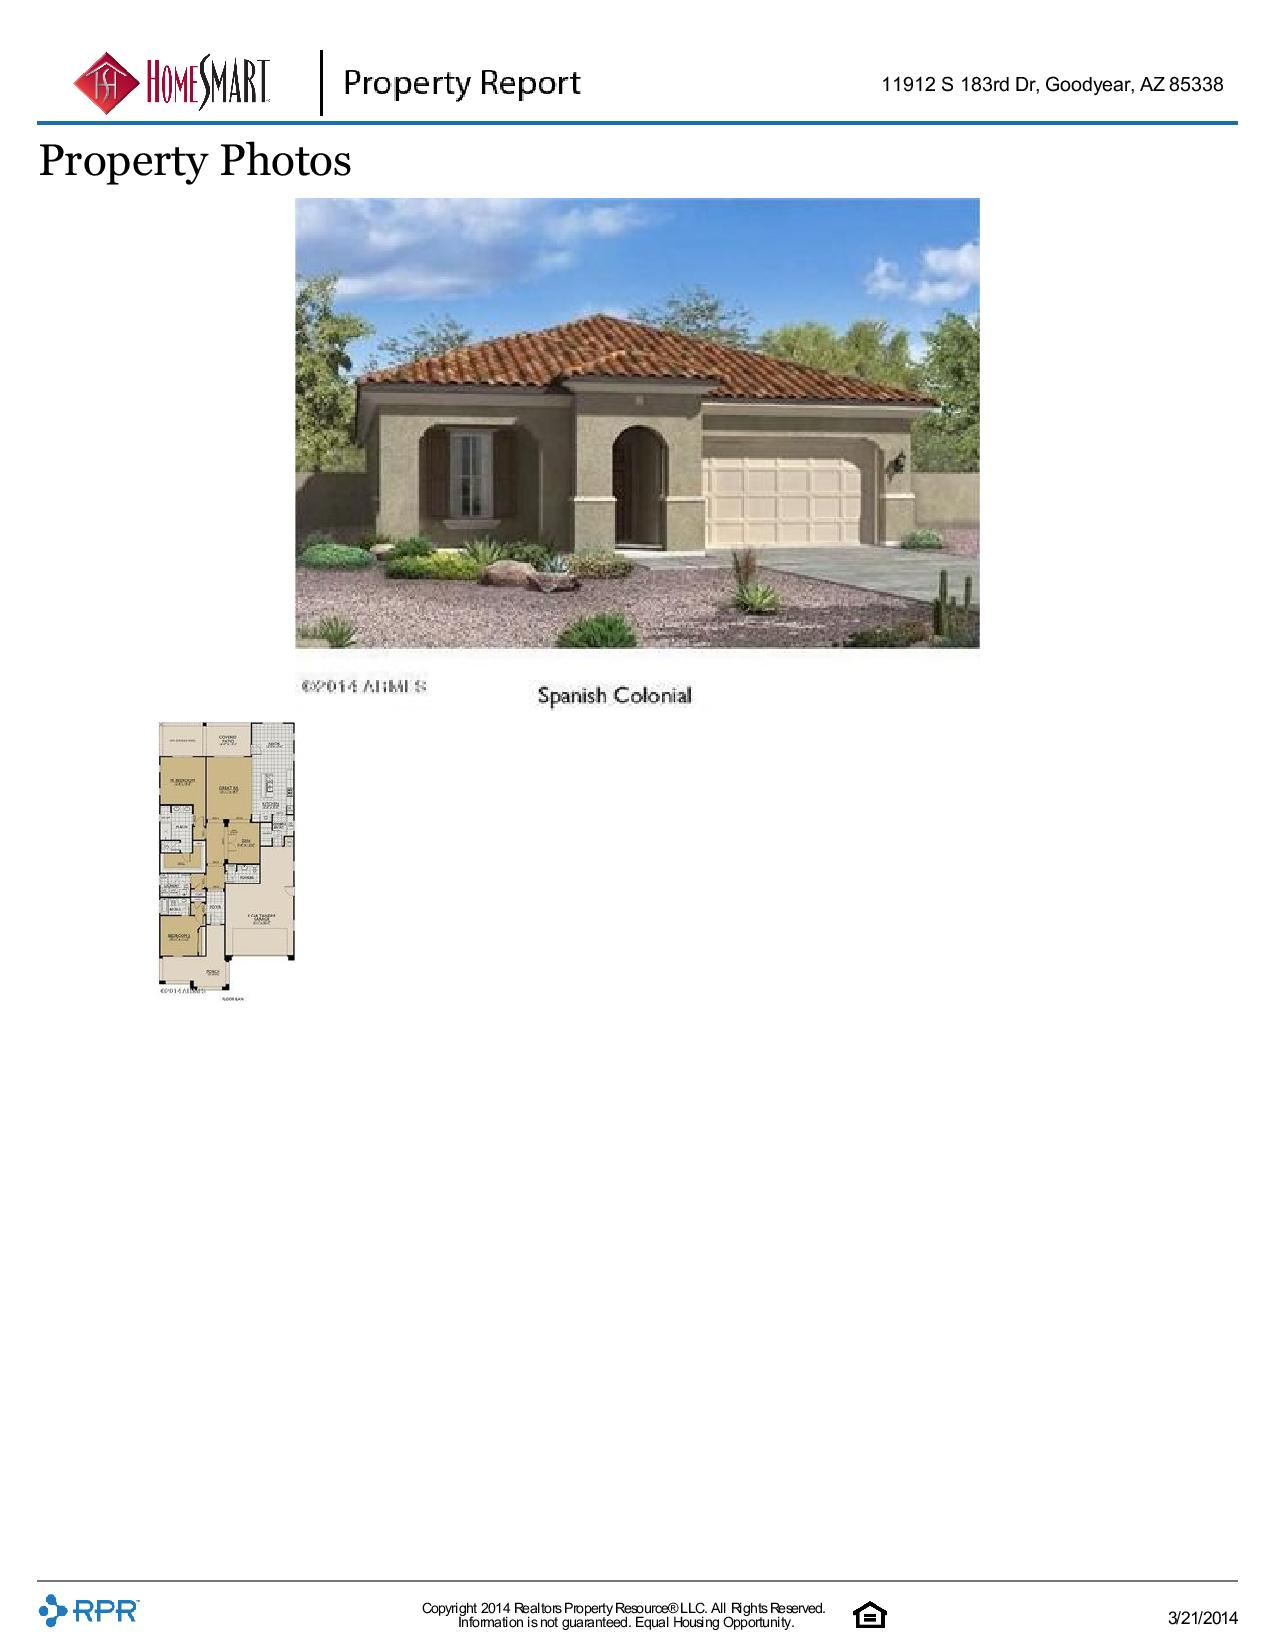 11912-S-183rd-Dr-Goodyear-AZ-85338-page-005